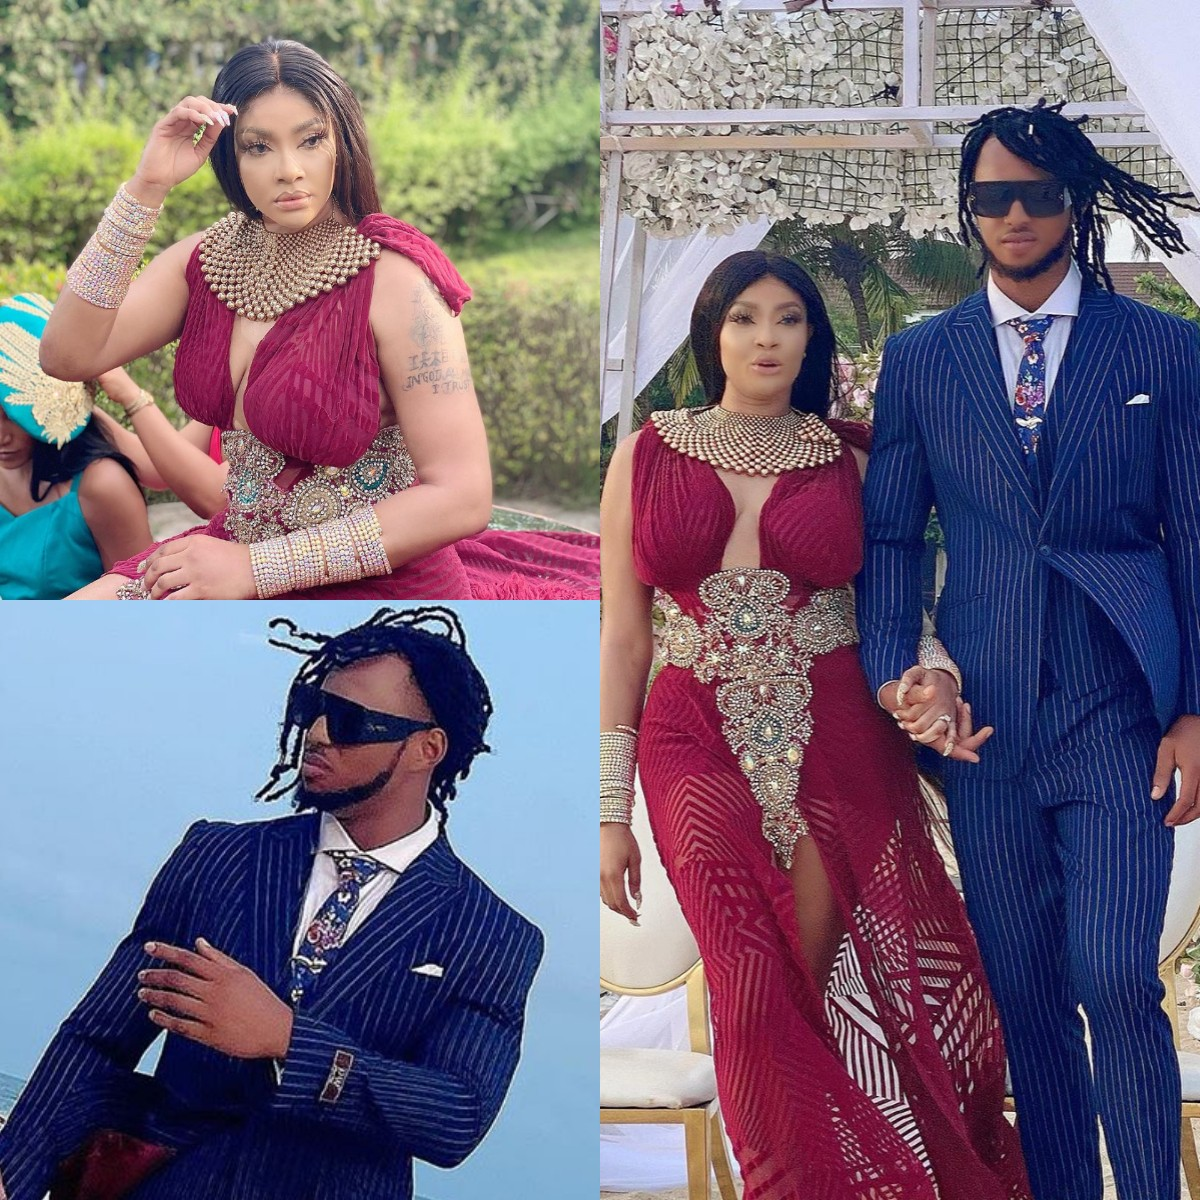 Angela Okorie wedding, Wedding photos of Nollywood actress, Angela Okorie and her hubby Desmond, Premium News24